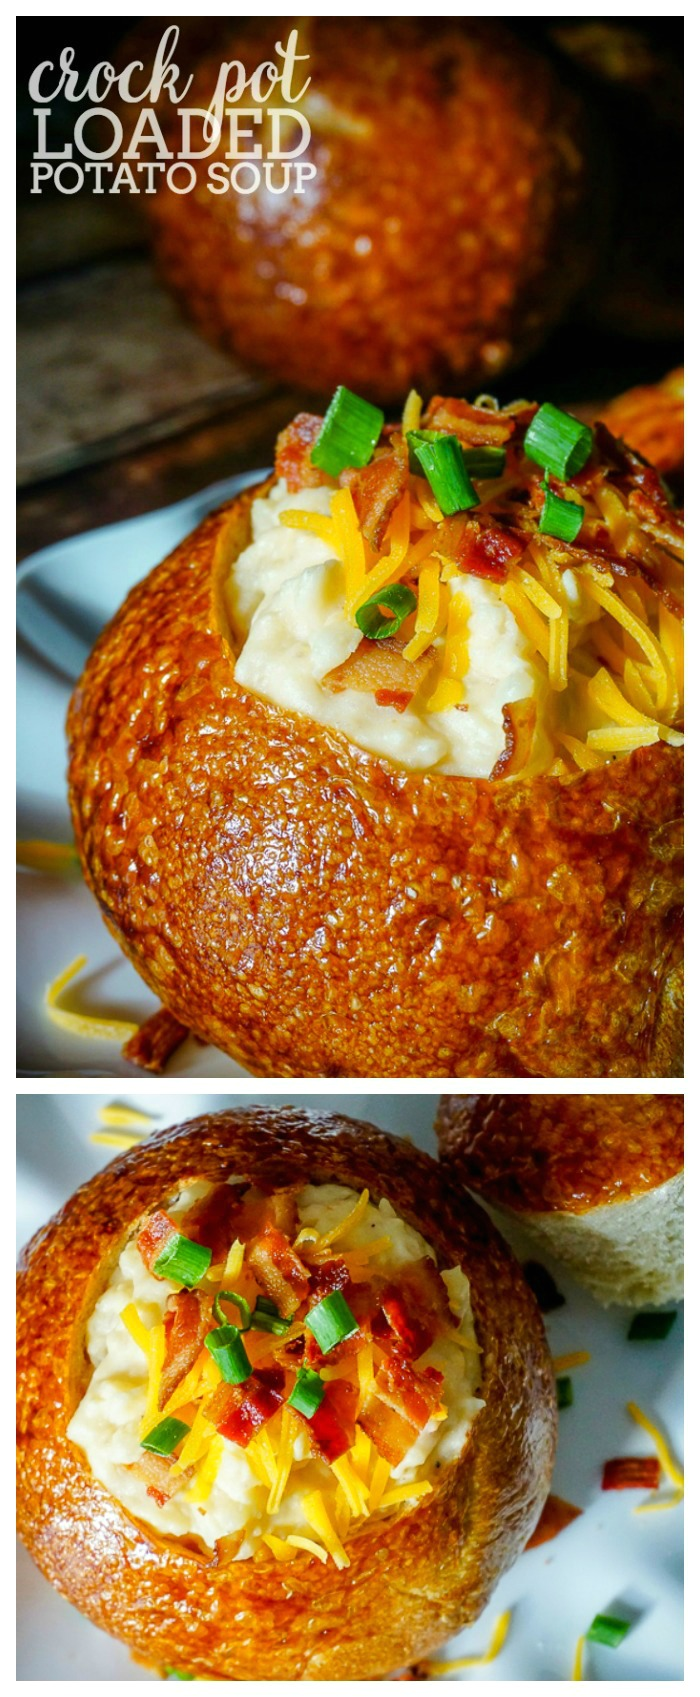 CROCK POT LOADED POTATO SOUP RECIPE - Make dinner time easier with a hearty, cheesy slow cooker version of this classic soup!   The Love Nerds